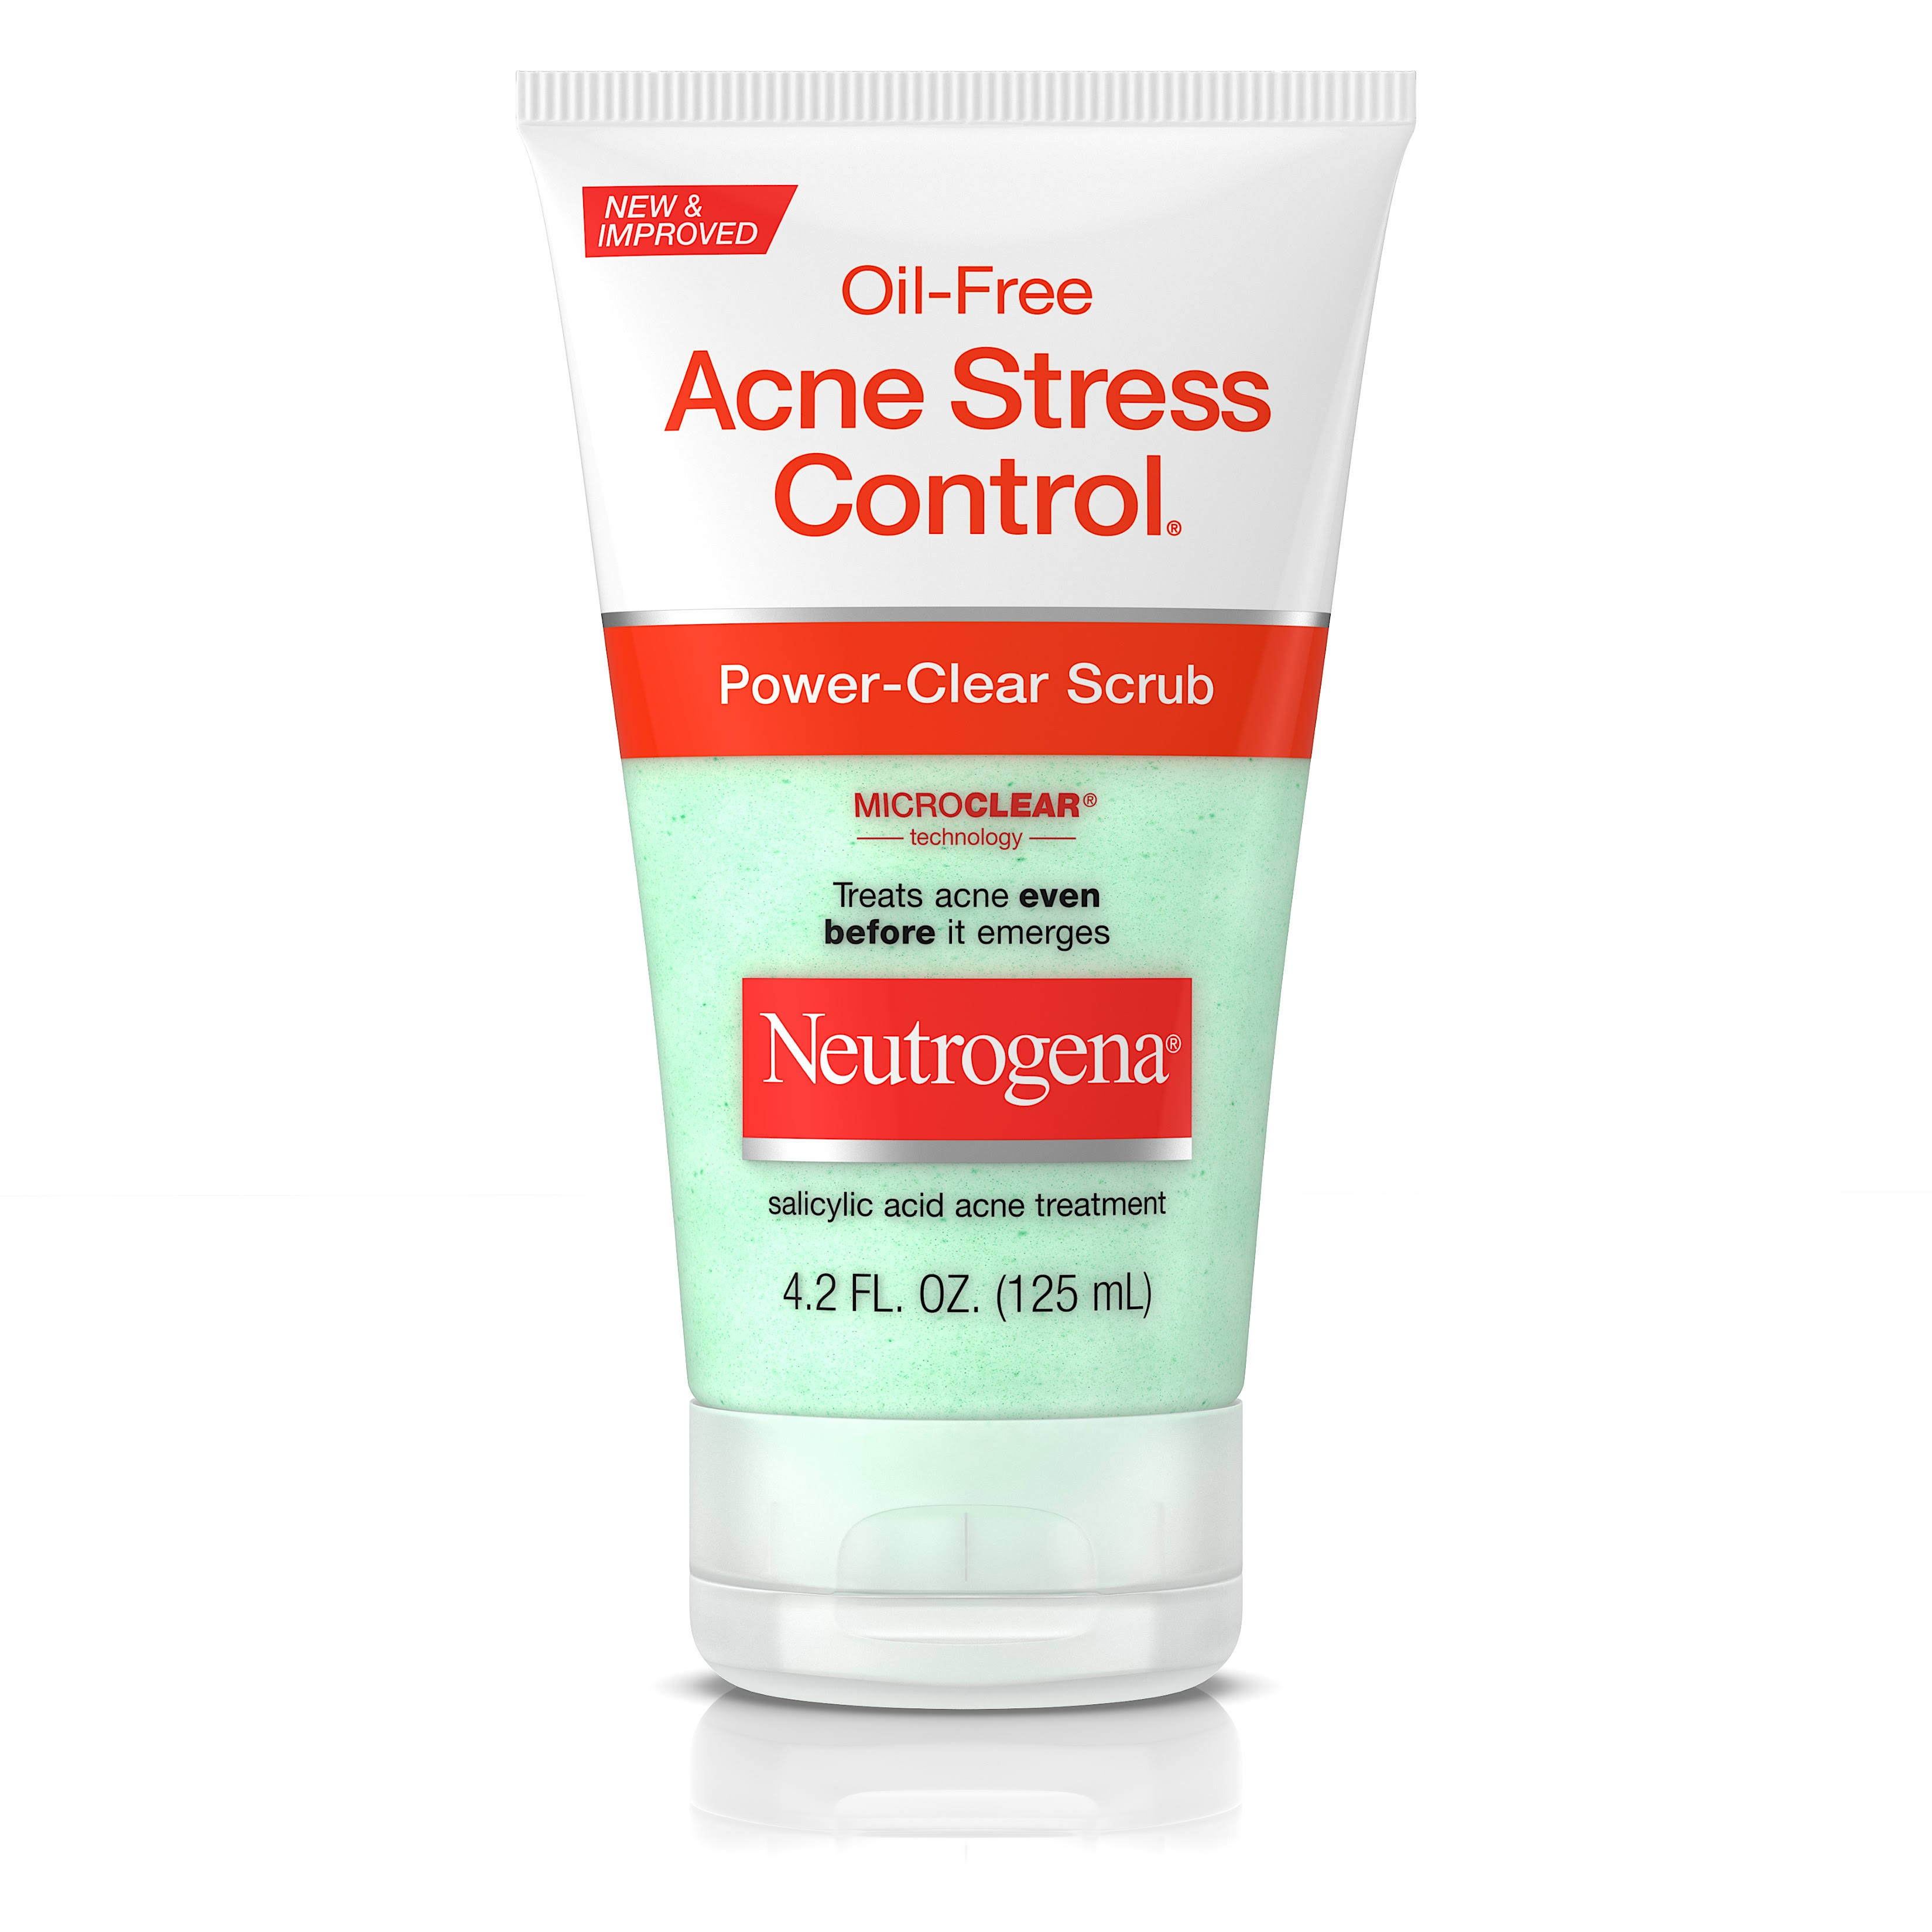 Neutrogena Acne Stress Control Power-Clear Scrub - 4.2oz